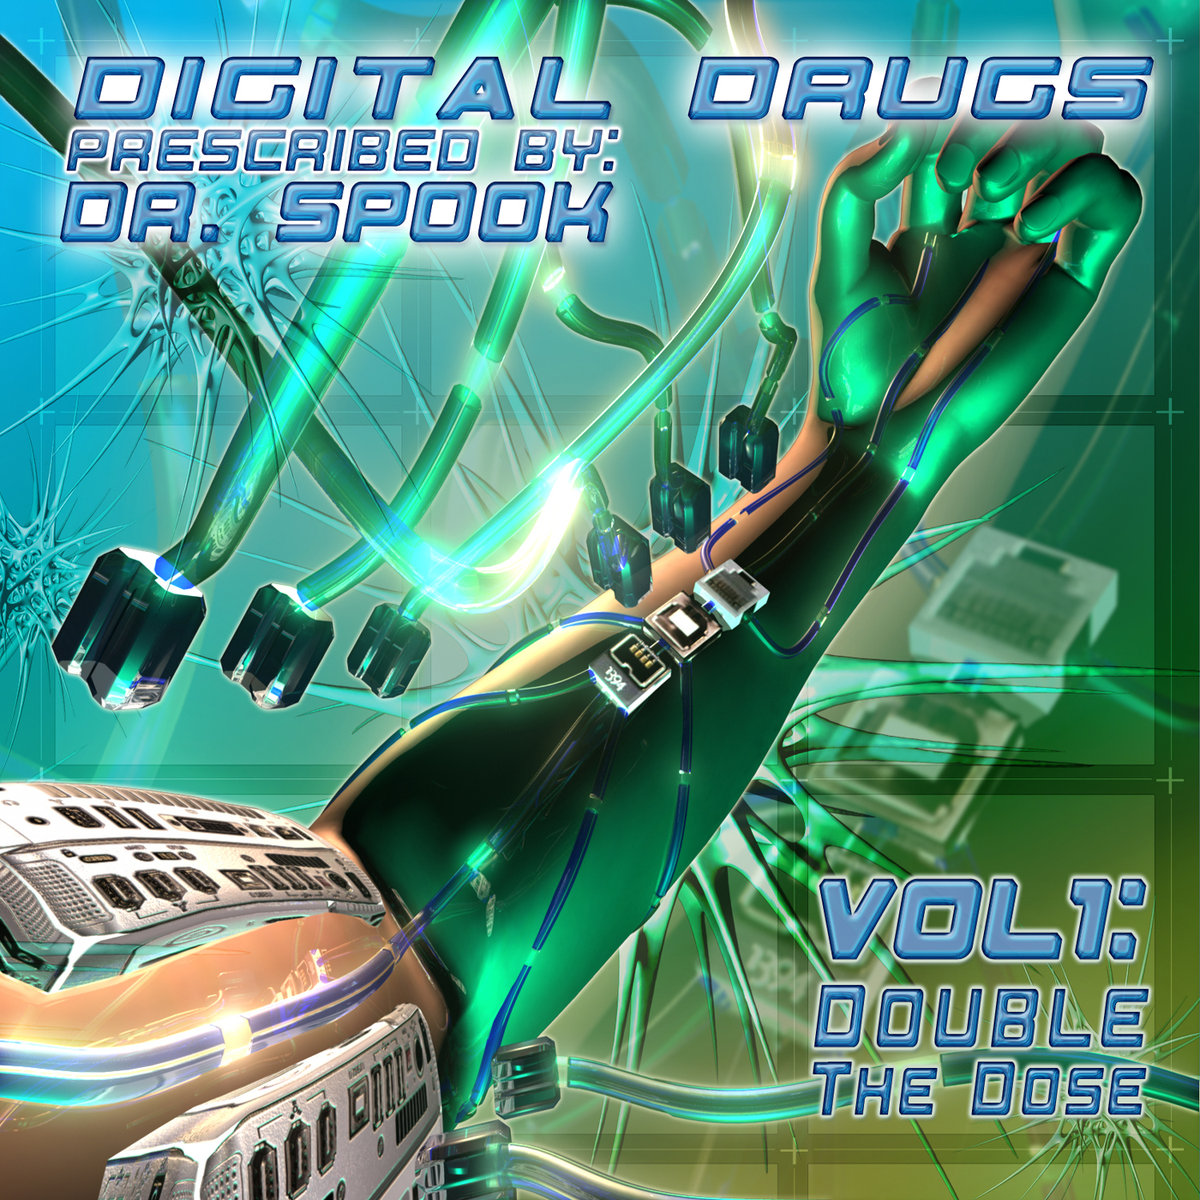 Distorted Goblin - Doctor Of Sound @ 'Various Artists - Digital Drugs Vol.1: Double the Dose (Prescribed by Dr. Spook)' album (electronic, goa)